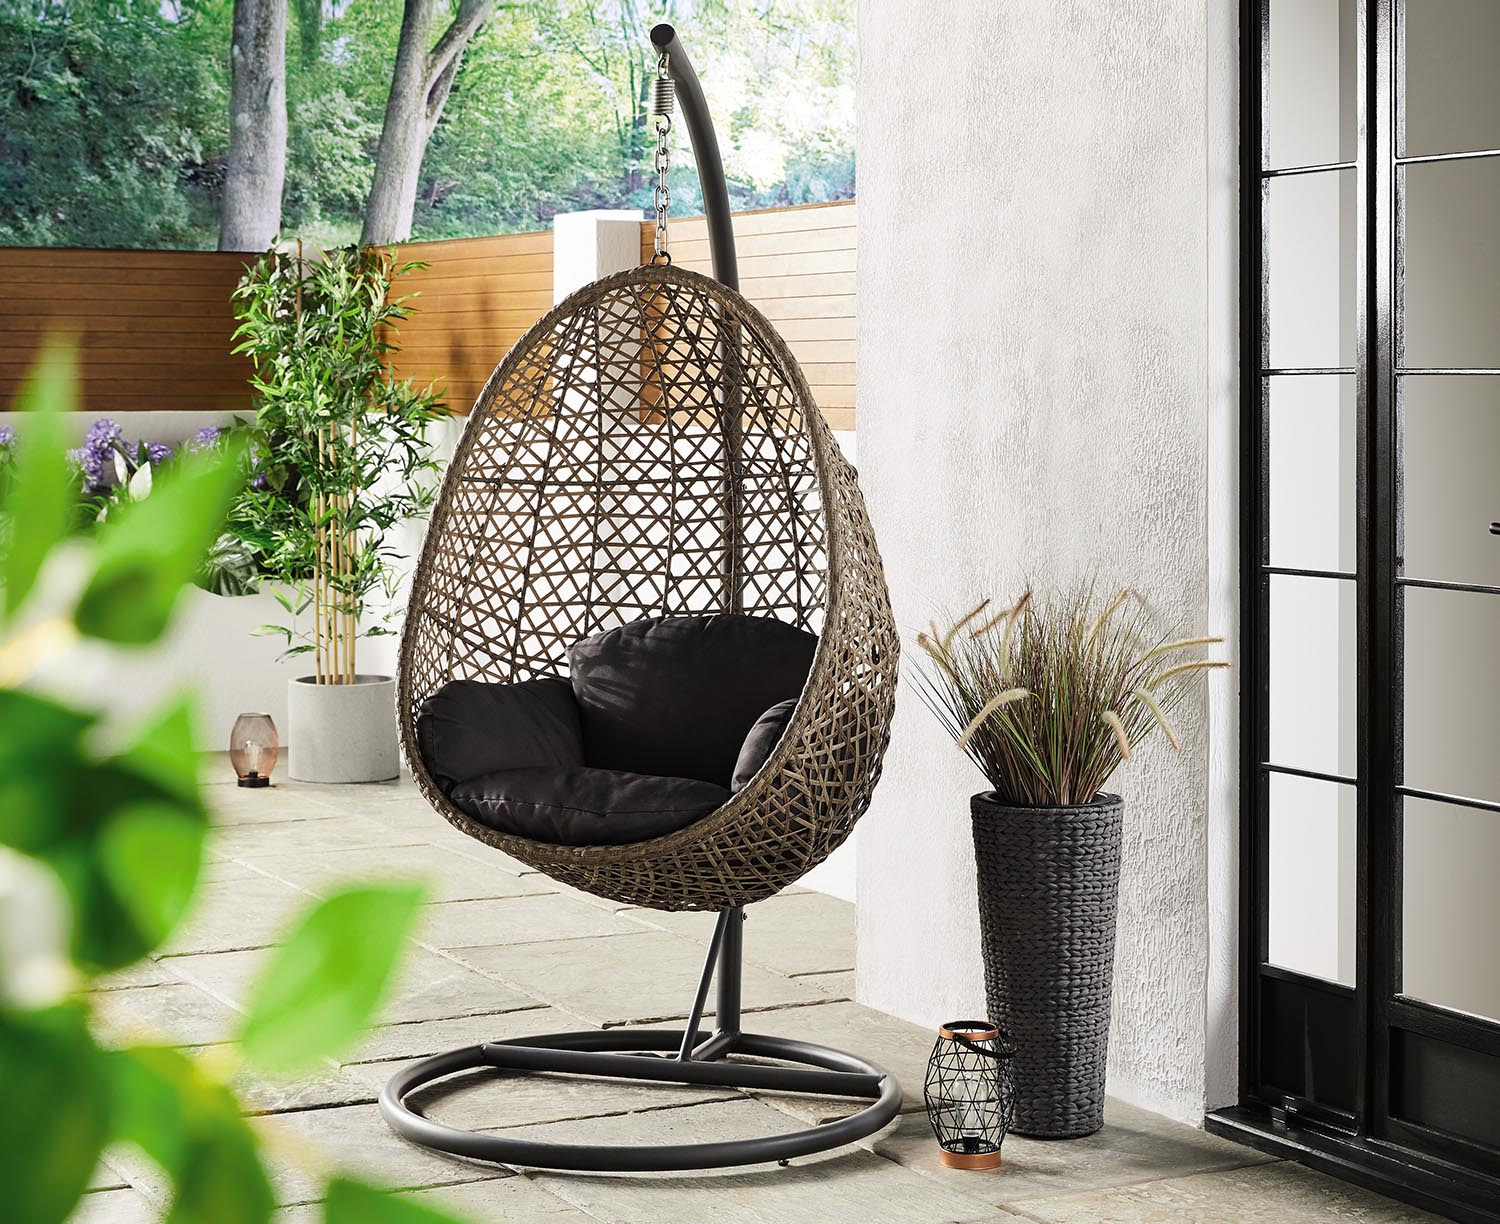 Aldi Specialbuys: Hanging egg chair